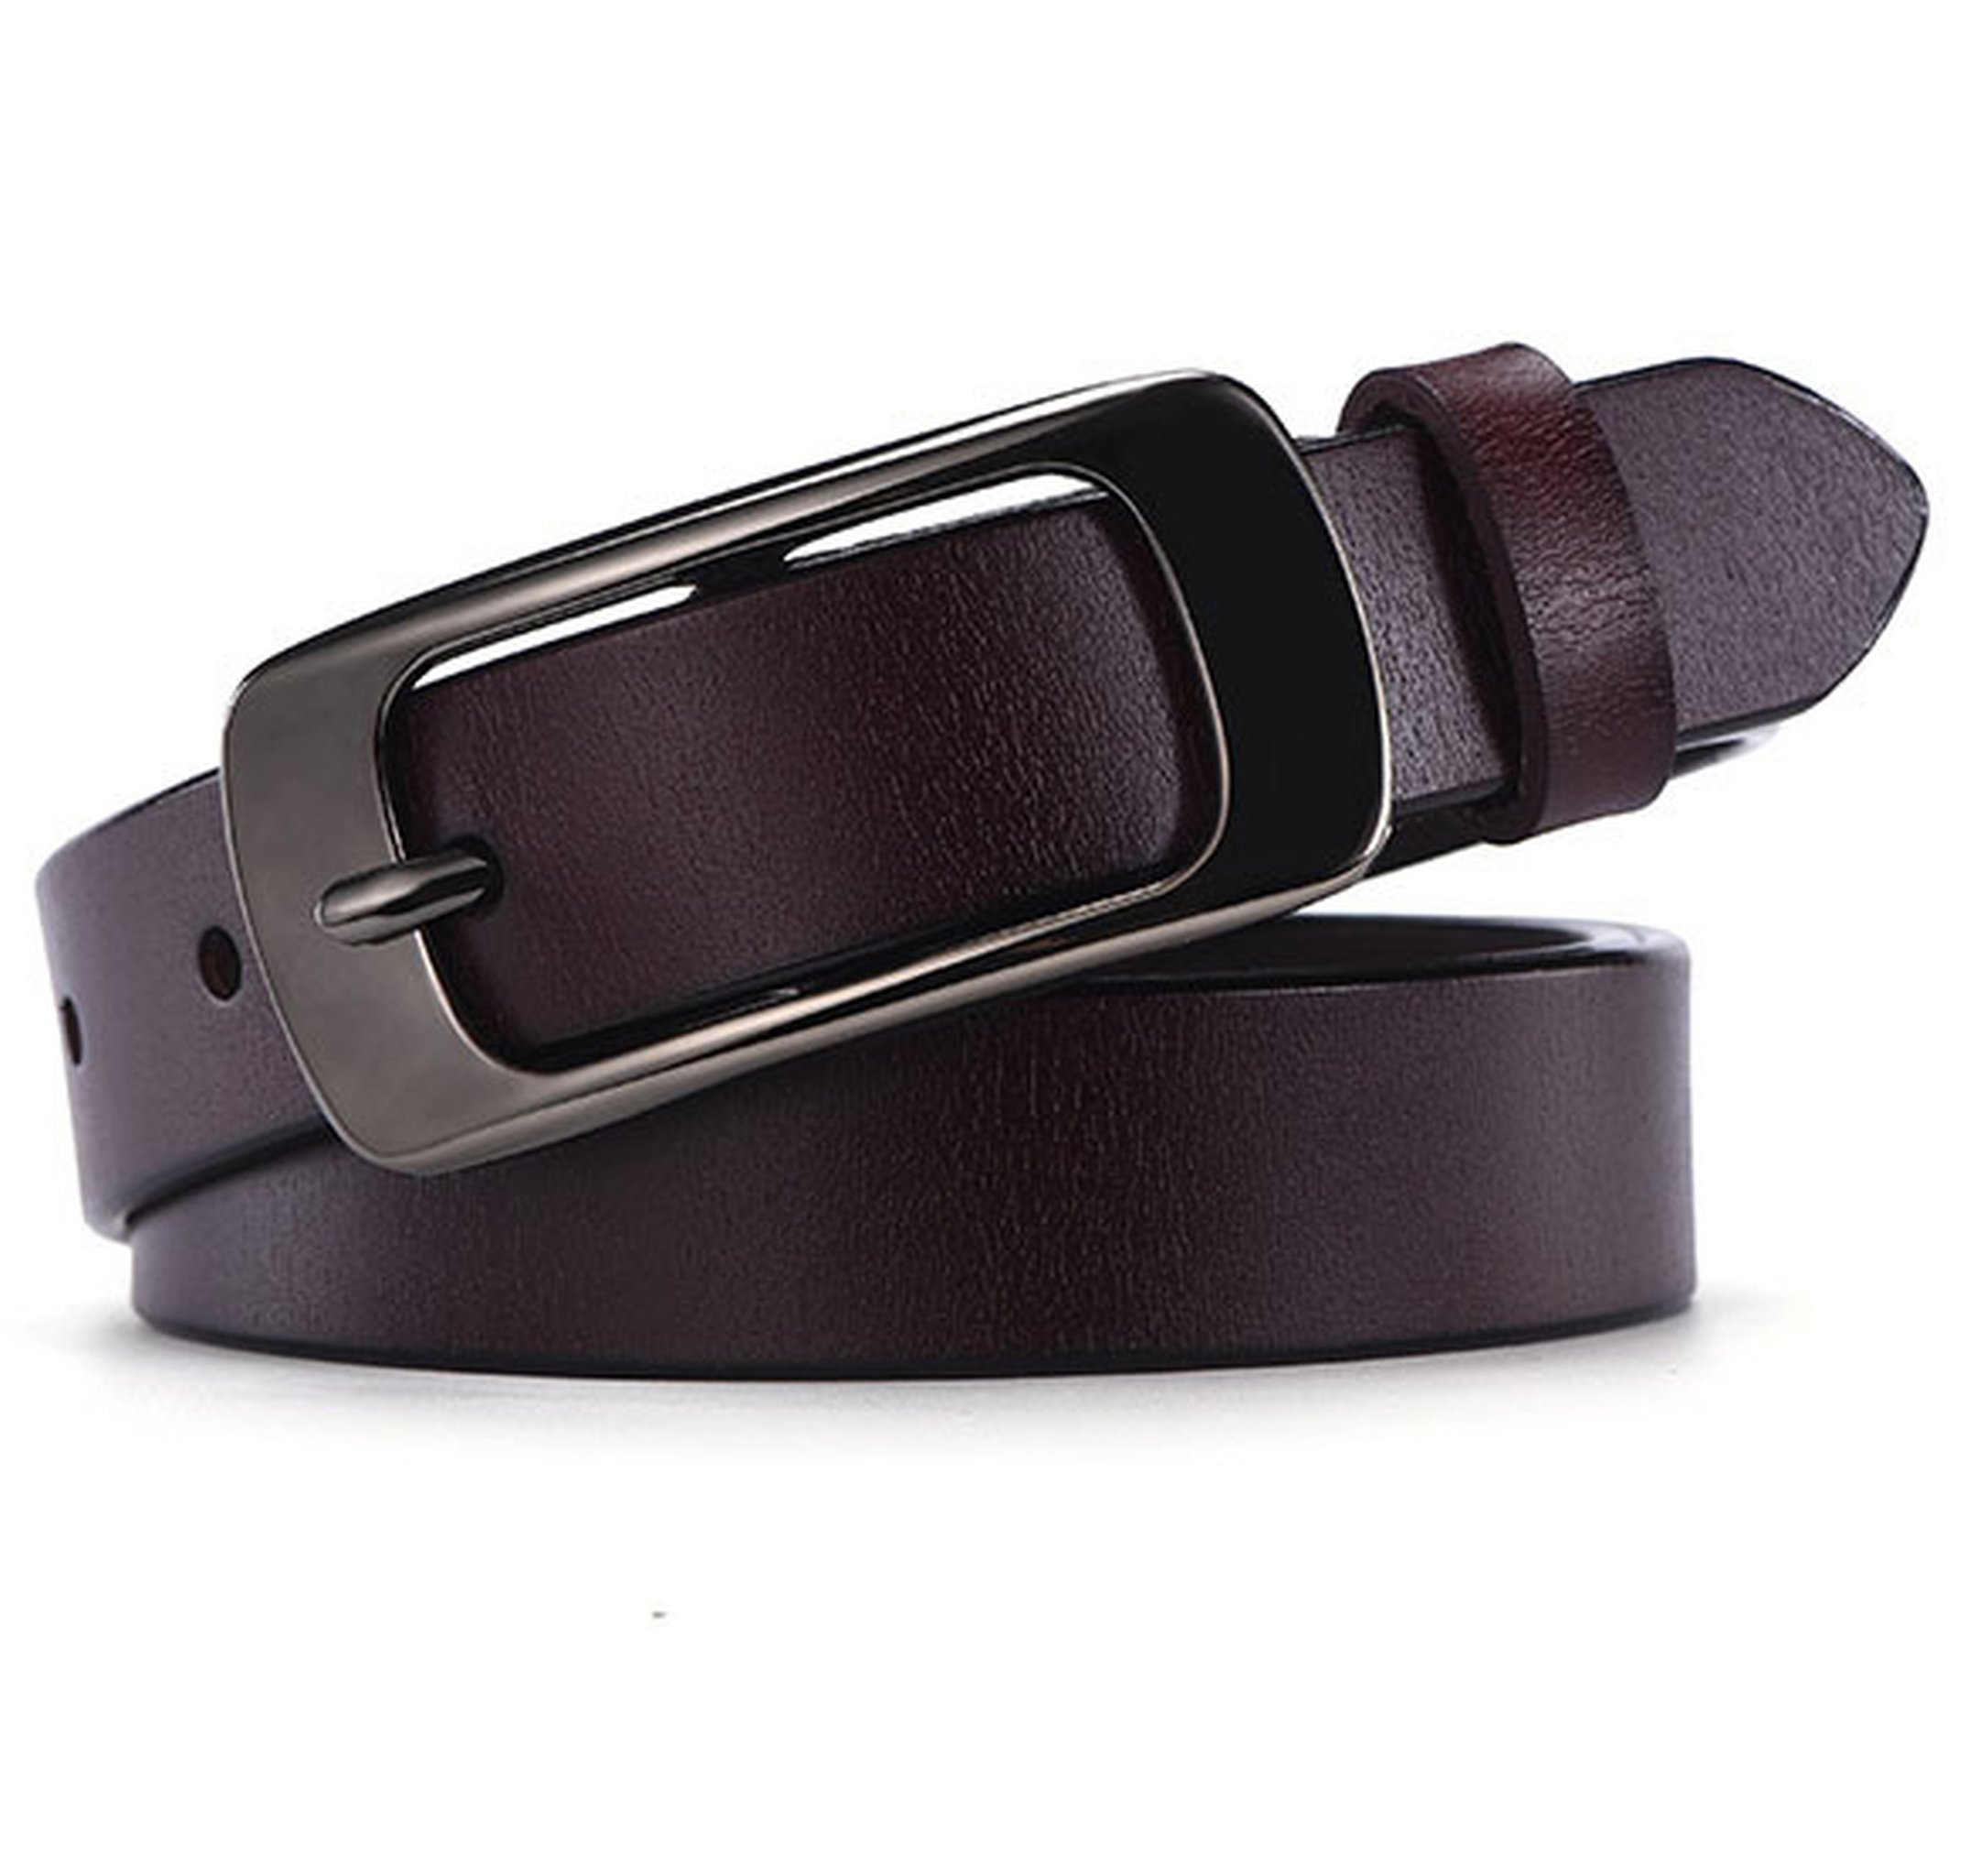 Ayli Women's Jean Belt, Classic Buckle Handcrafted Genuine Leather Belt, Free Gift Box, Coffee, Fits Waist 30'' to 32'' (US Pants Size 8-12), bt3w006cf100